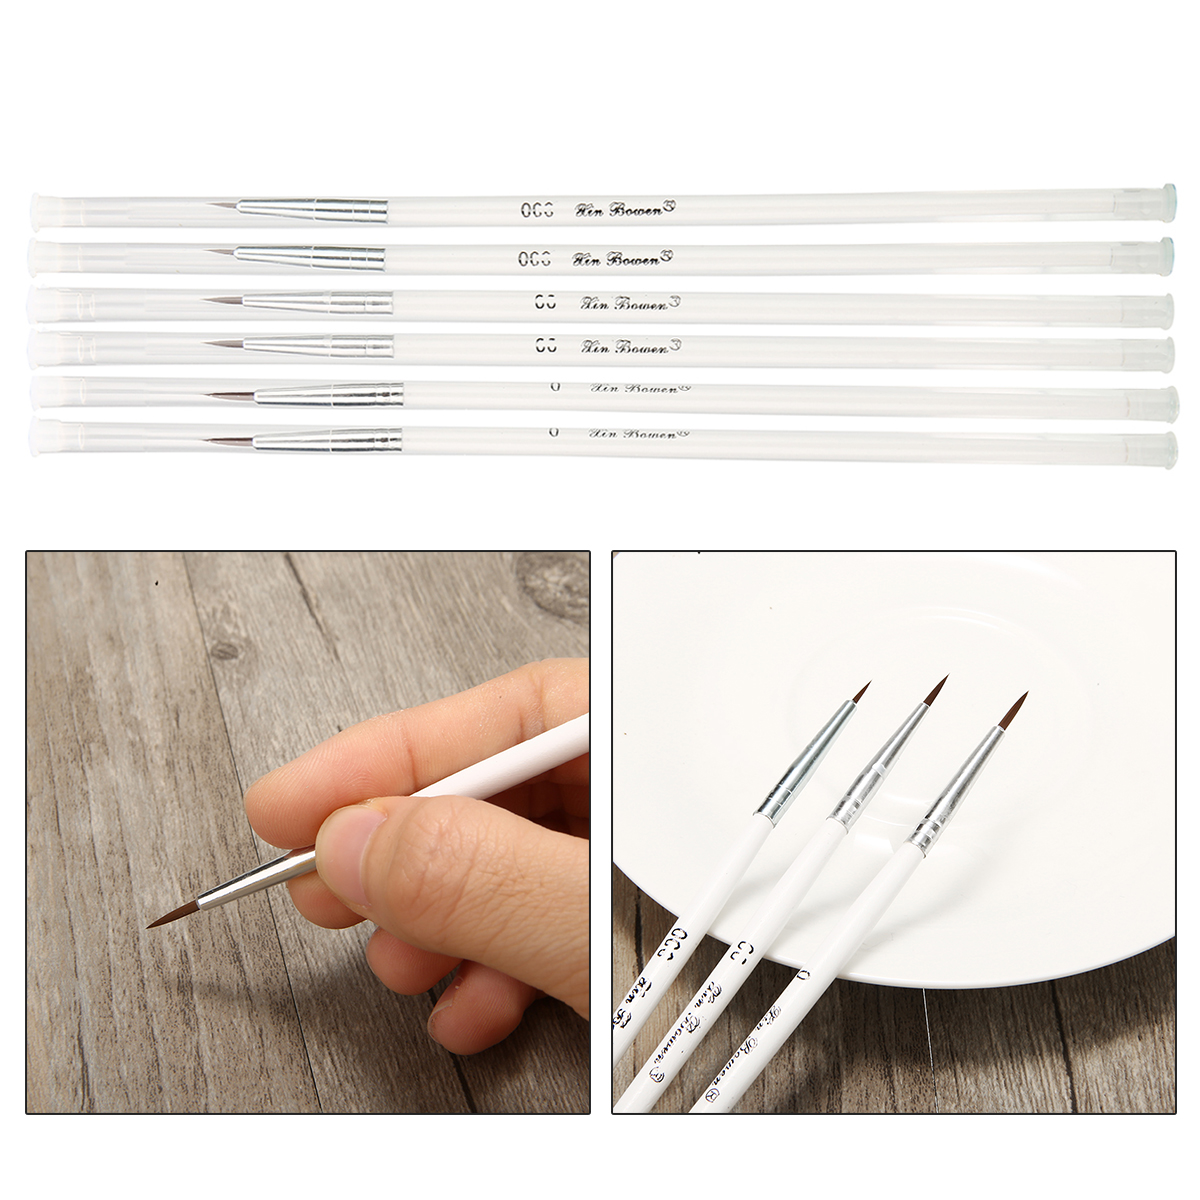 6 Piece Miniature Art Fine Detail Paint Brush Set For Detailing & Art Hand Drawn Painting Brush Pen Nylon Hair Wood Handle